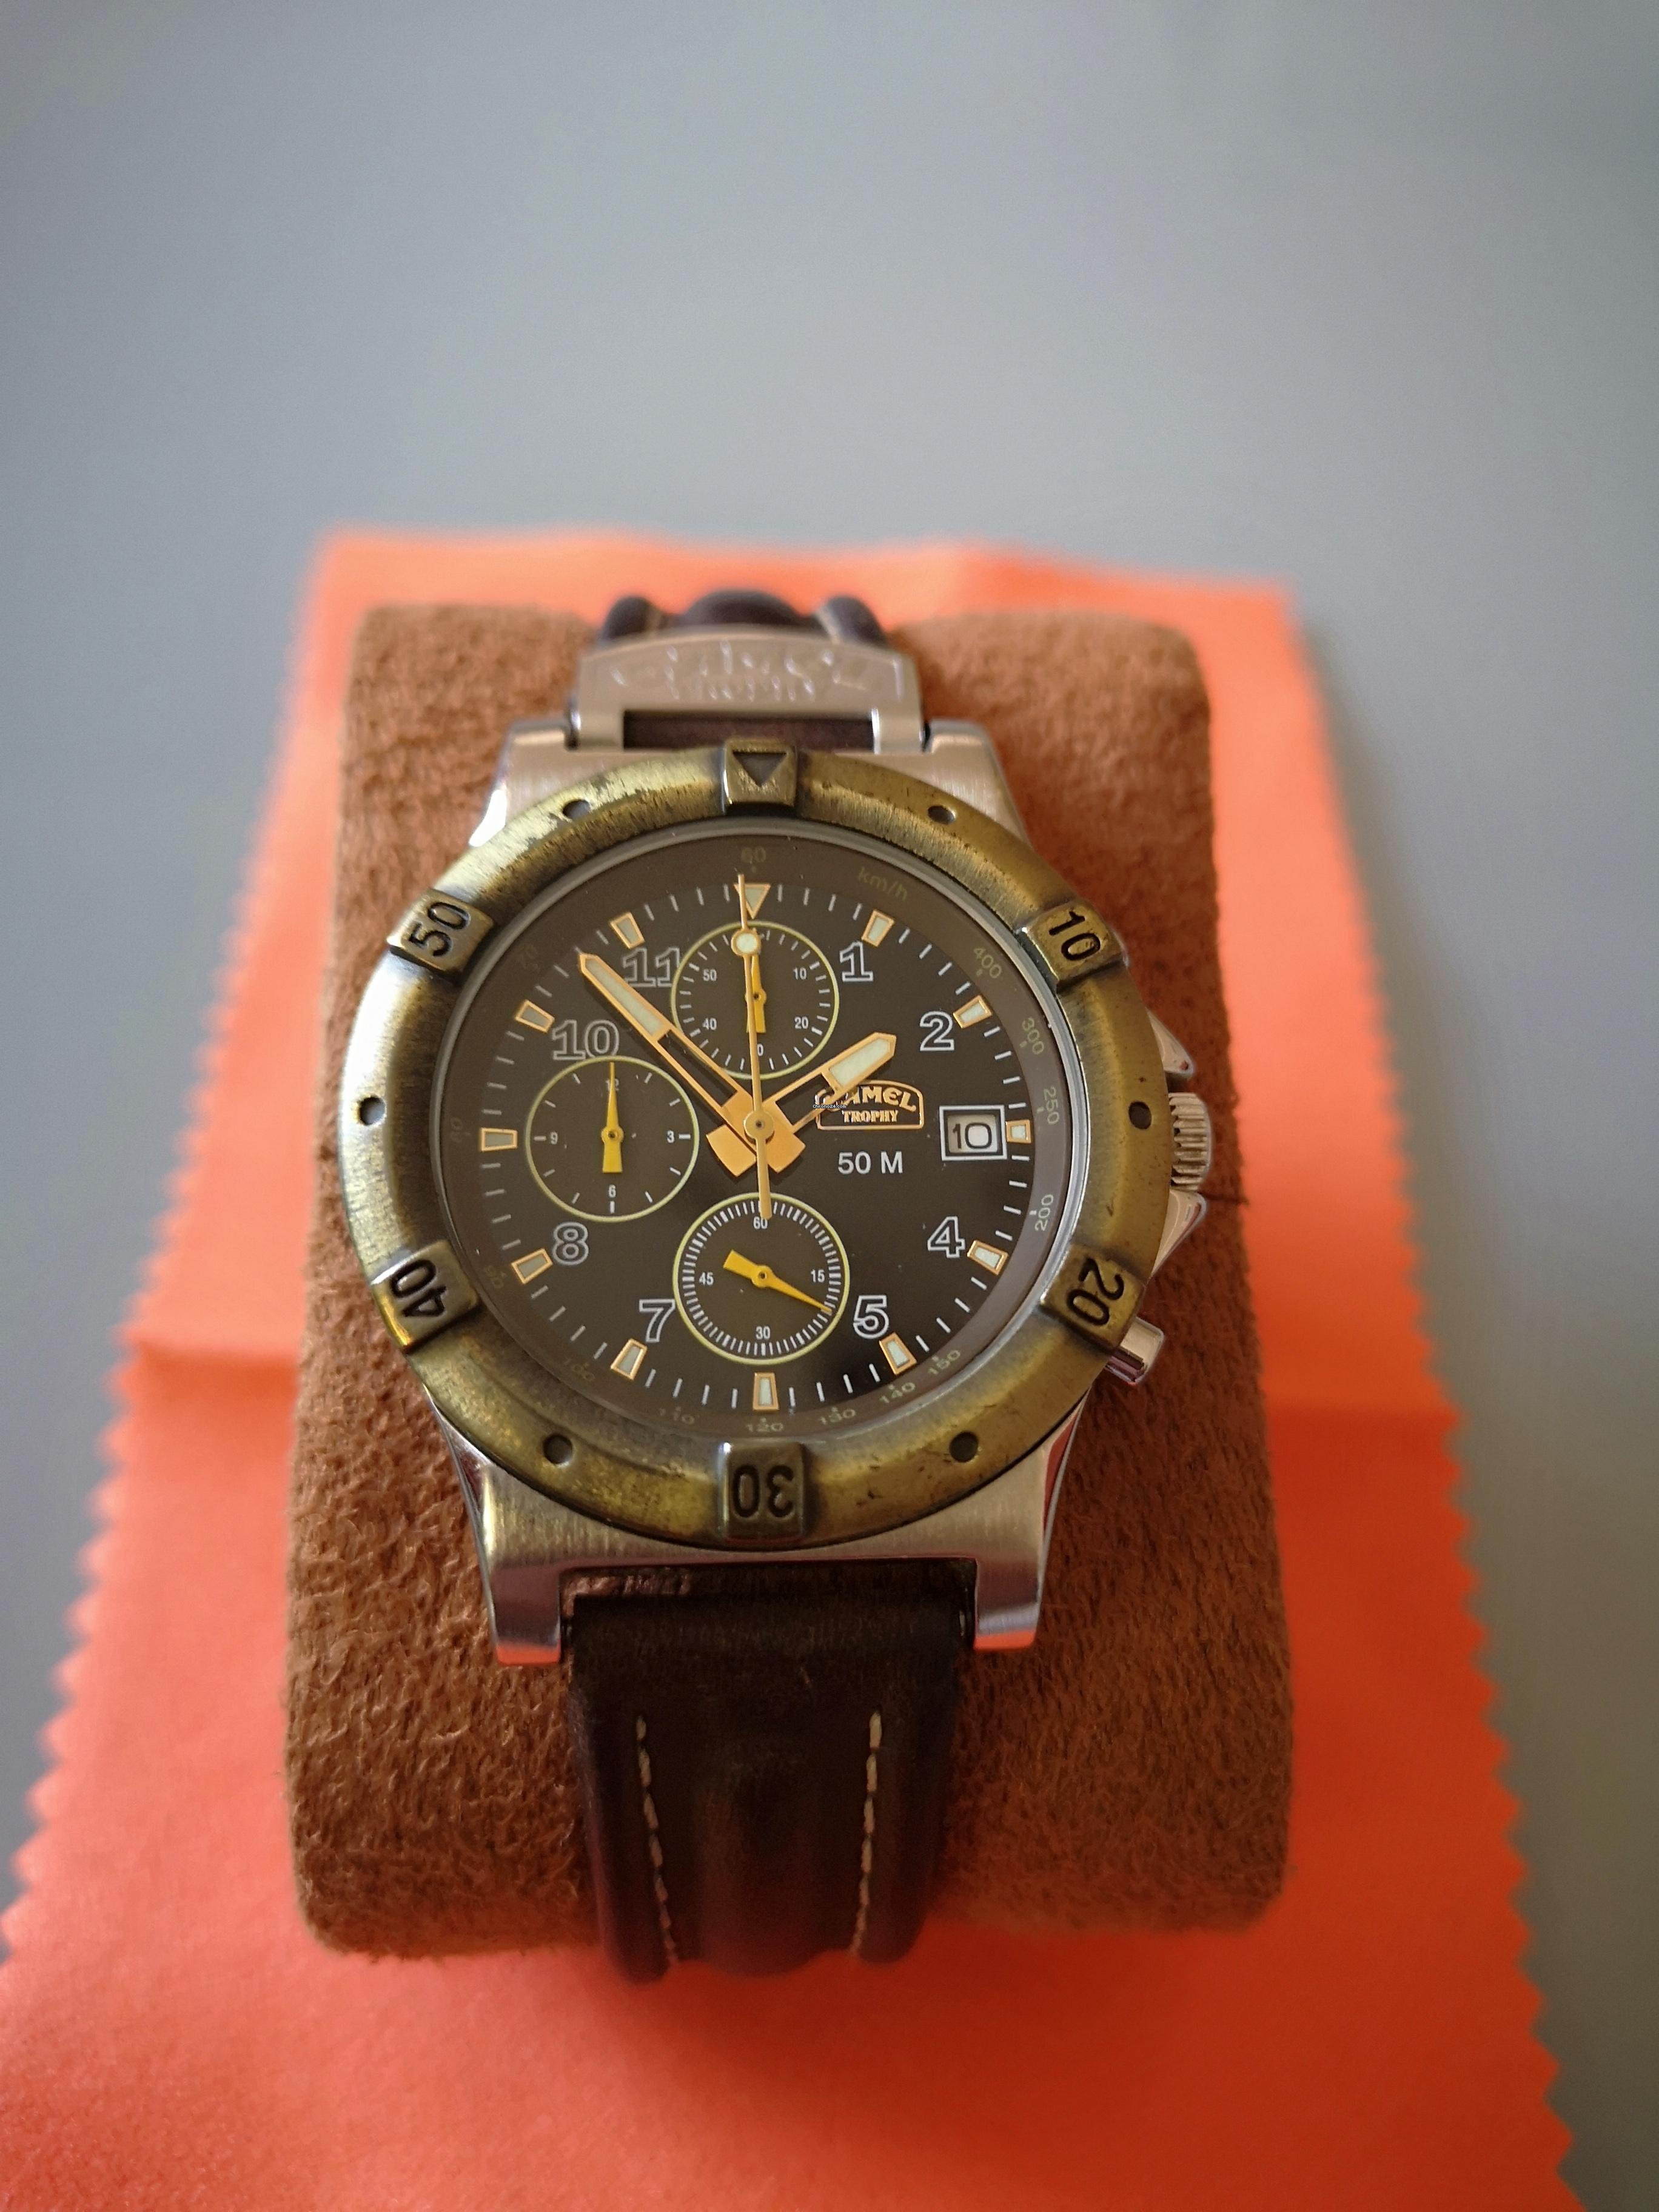 Nieuw Camel Active Chrono for Rp. 1,931,117 for sale from a Private MB-21